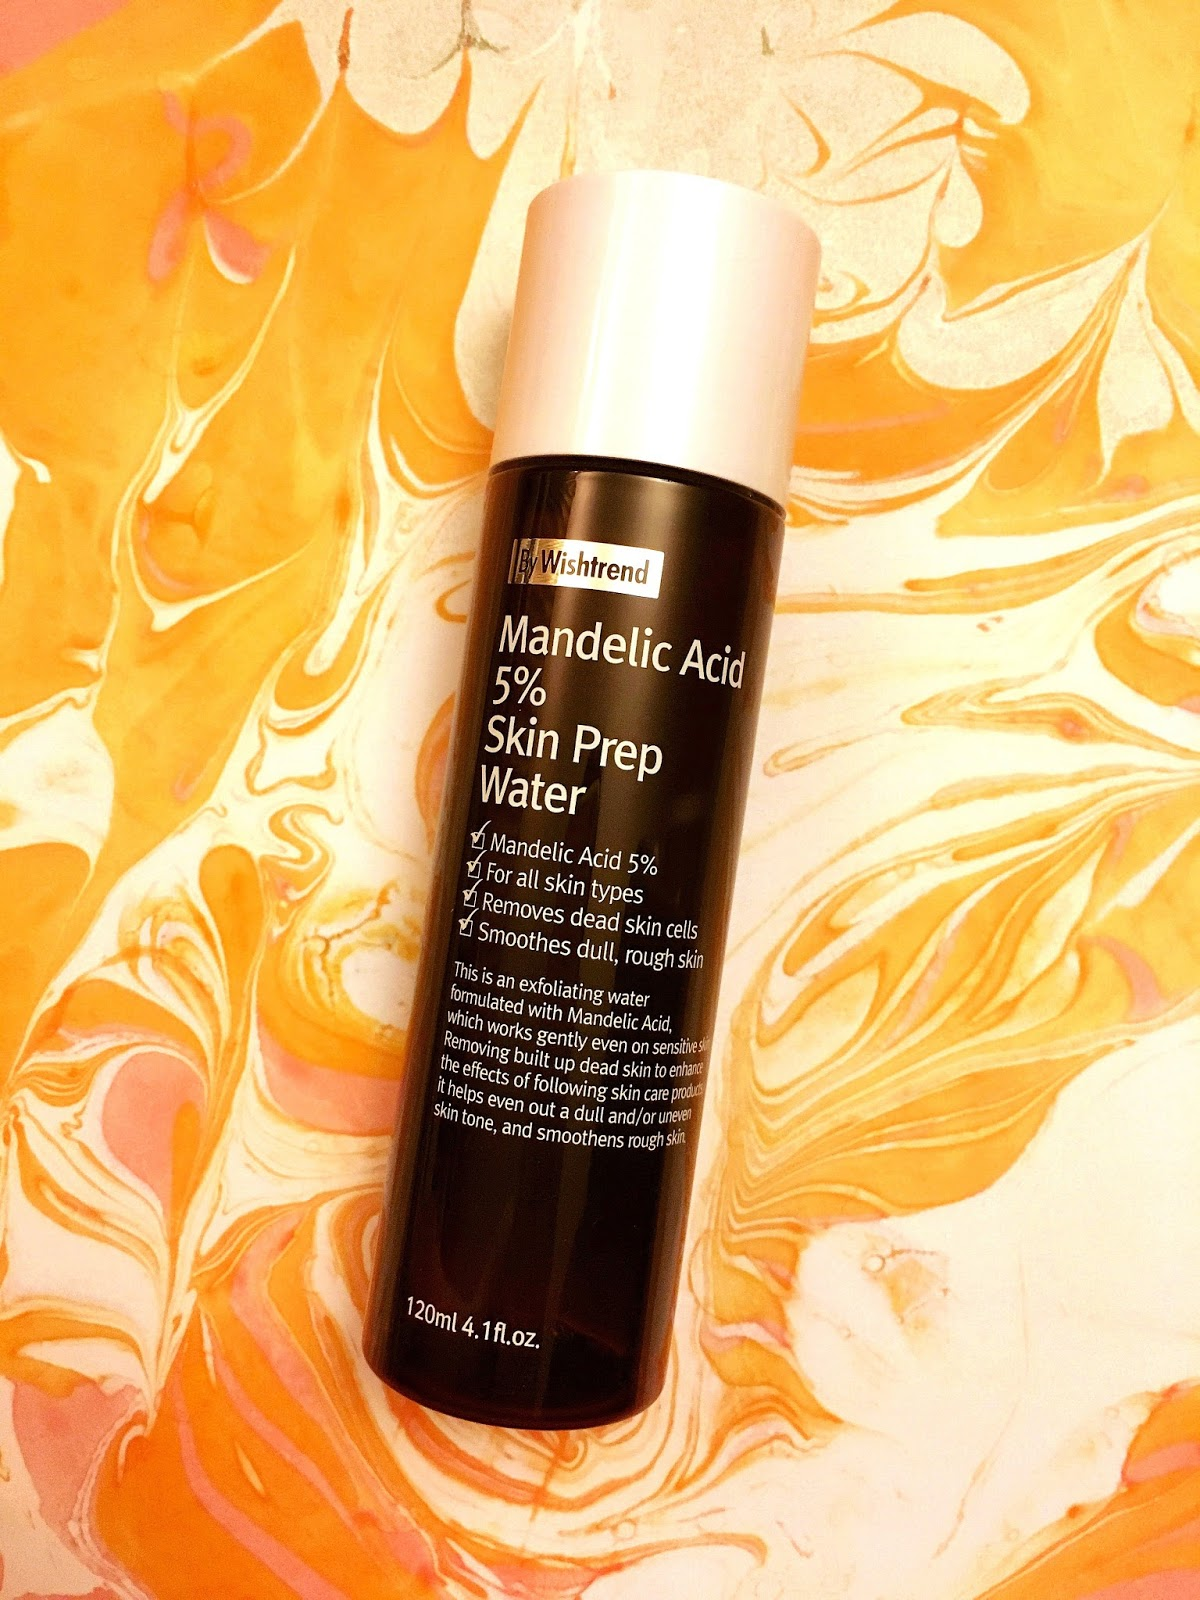 All About AHAs - Mandelic Acid 5% Skin Prep Water by Wishtrend